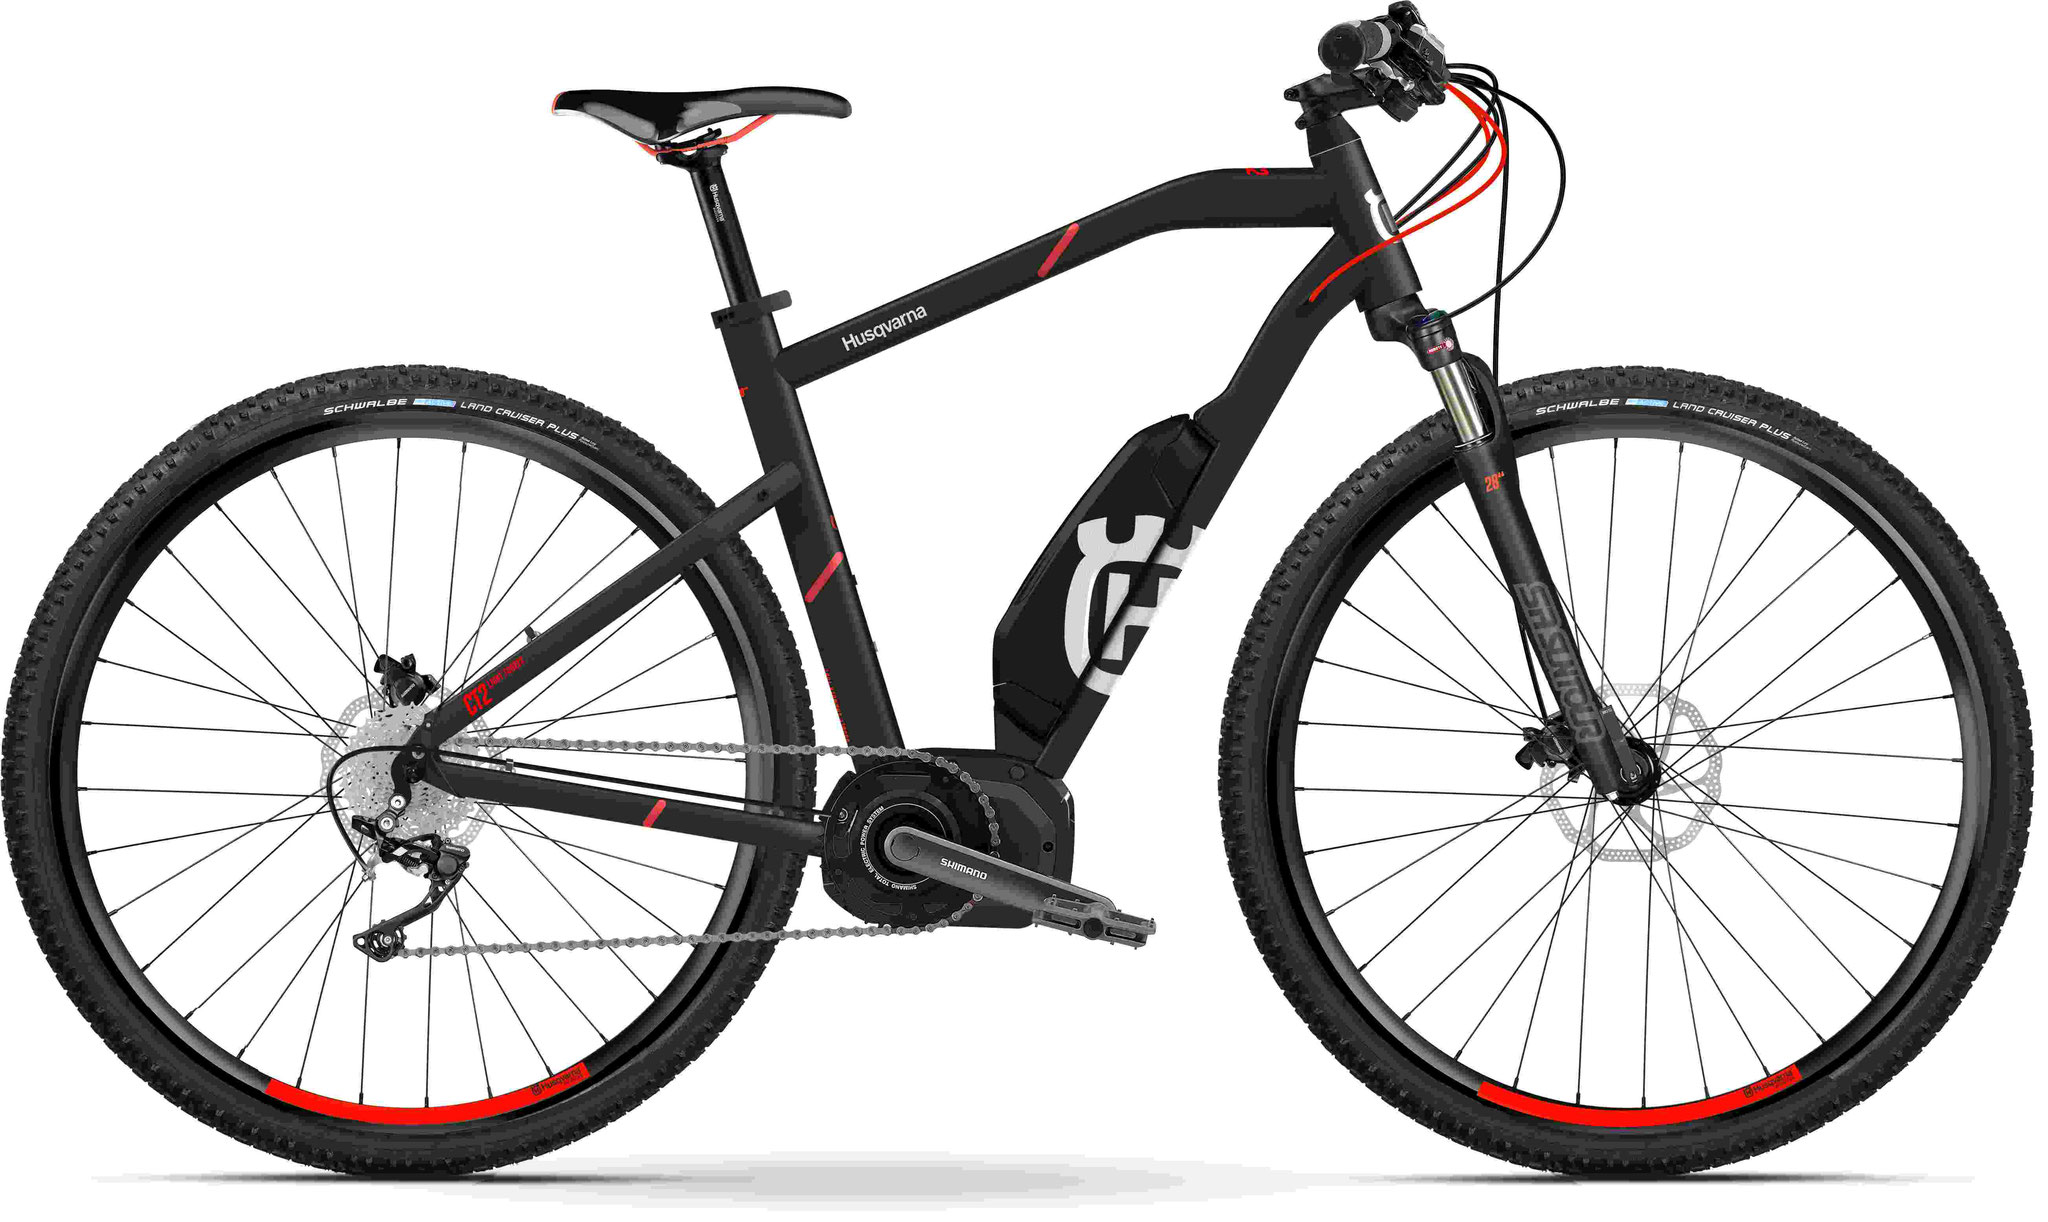 Husqvarna Cross Tourer CT2 e-Mountainbike, MTB Pedelec 2018 schwarz/rot Diamantrahmen